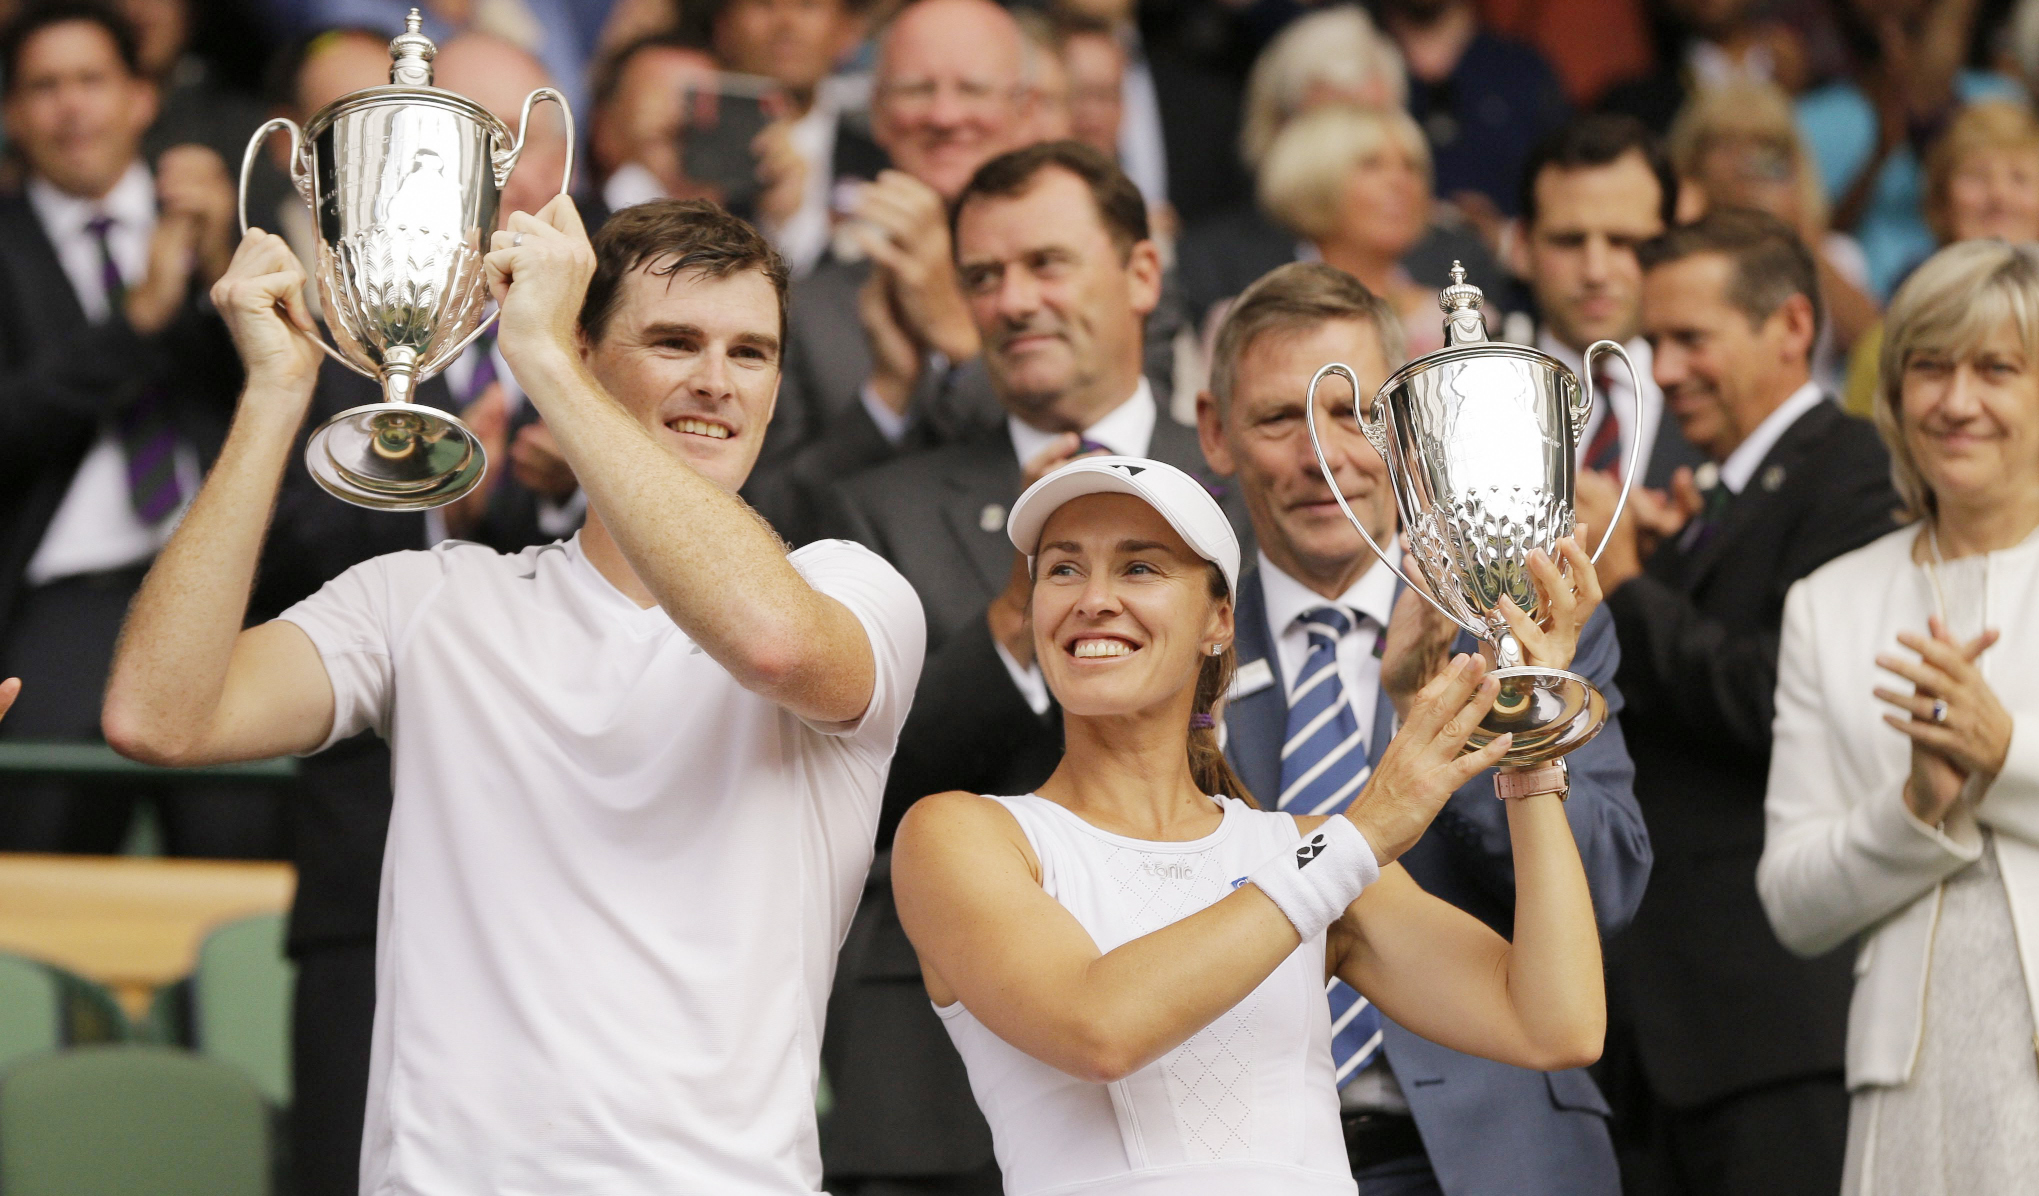 Jamie Murray, Martina Hingis, Doubles Champion, Tennis, Win